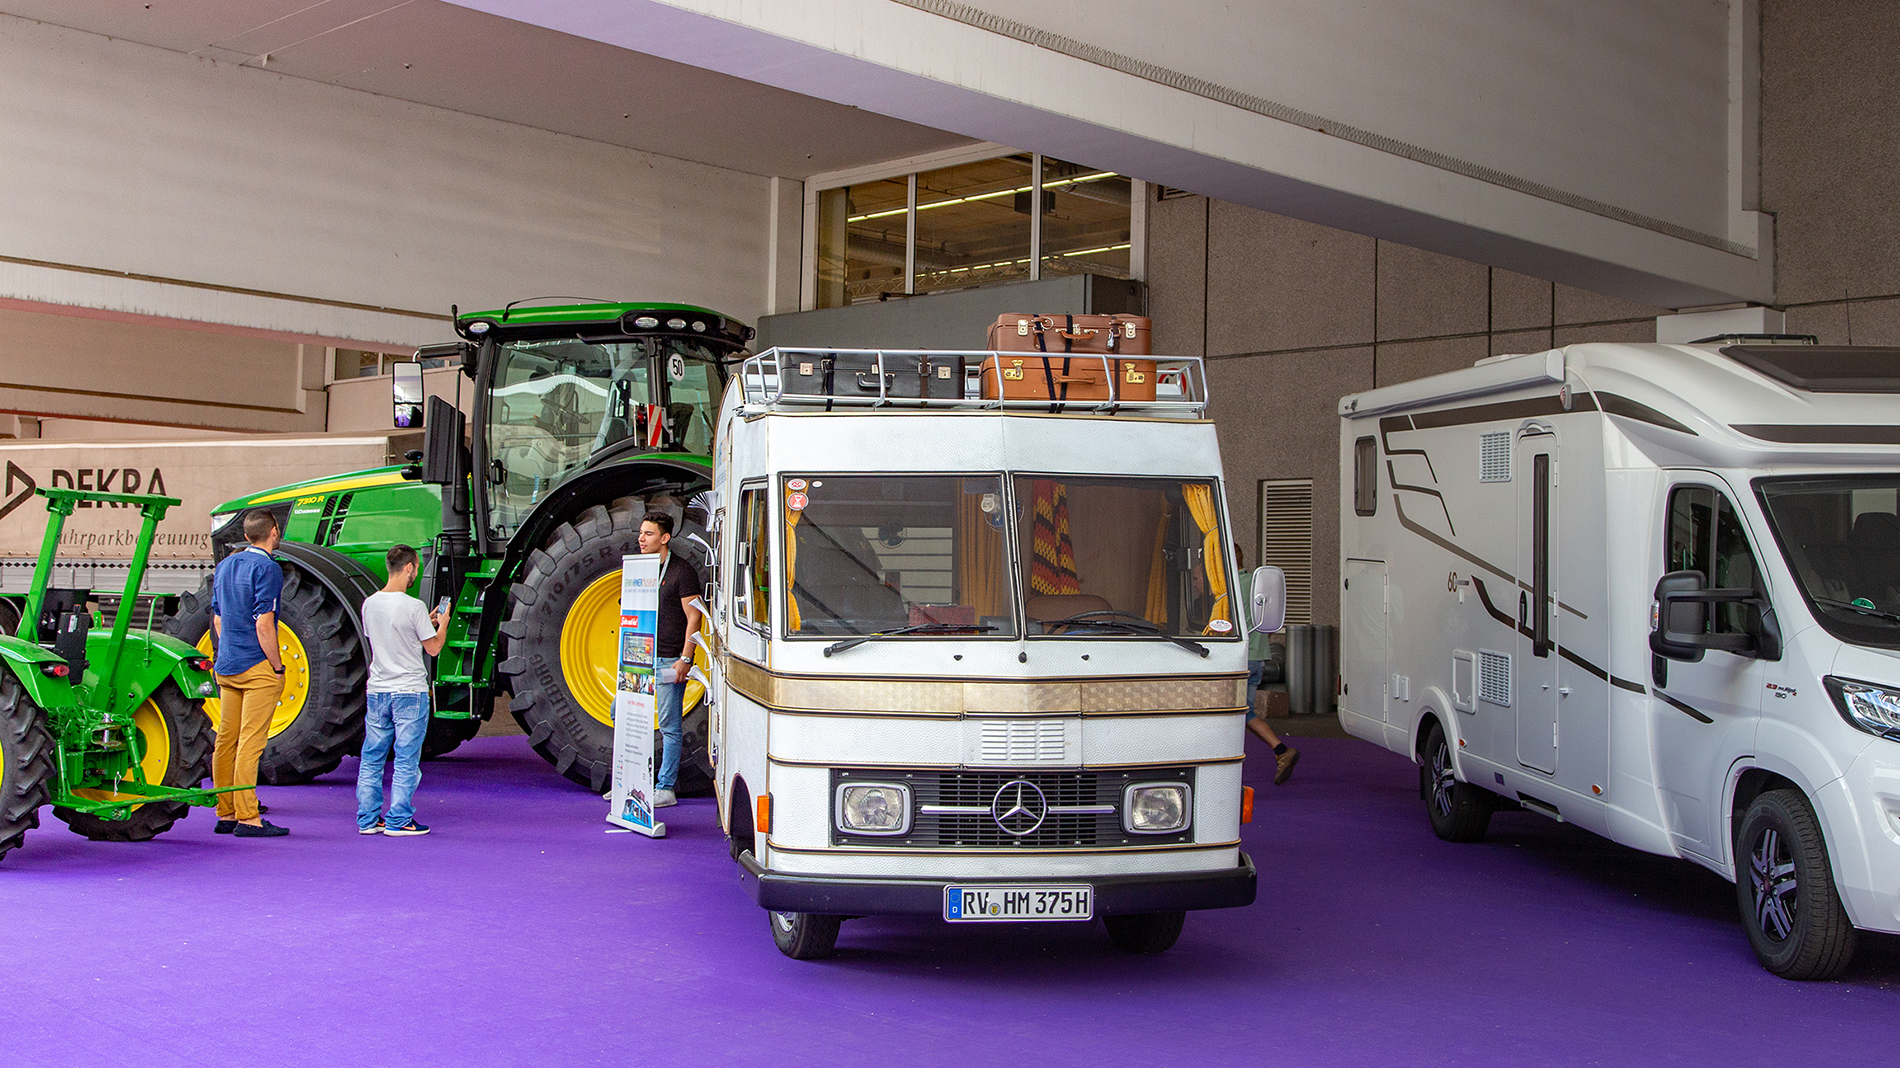 Caravans at Automechanika